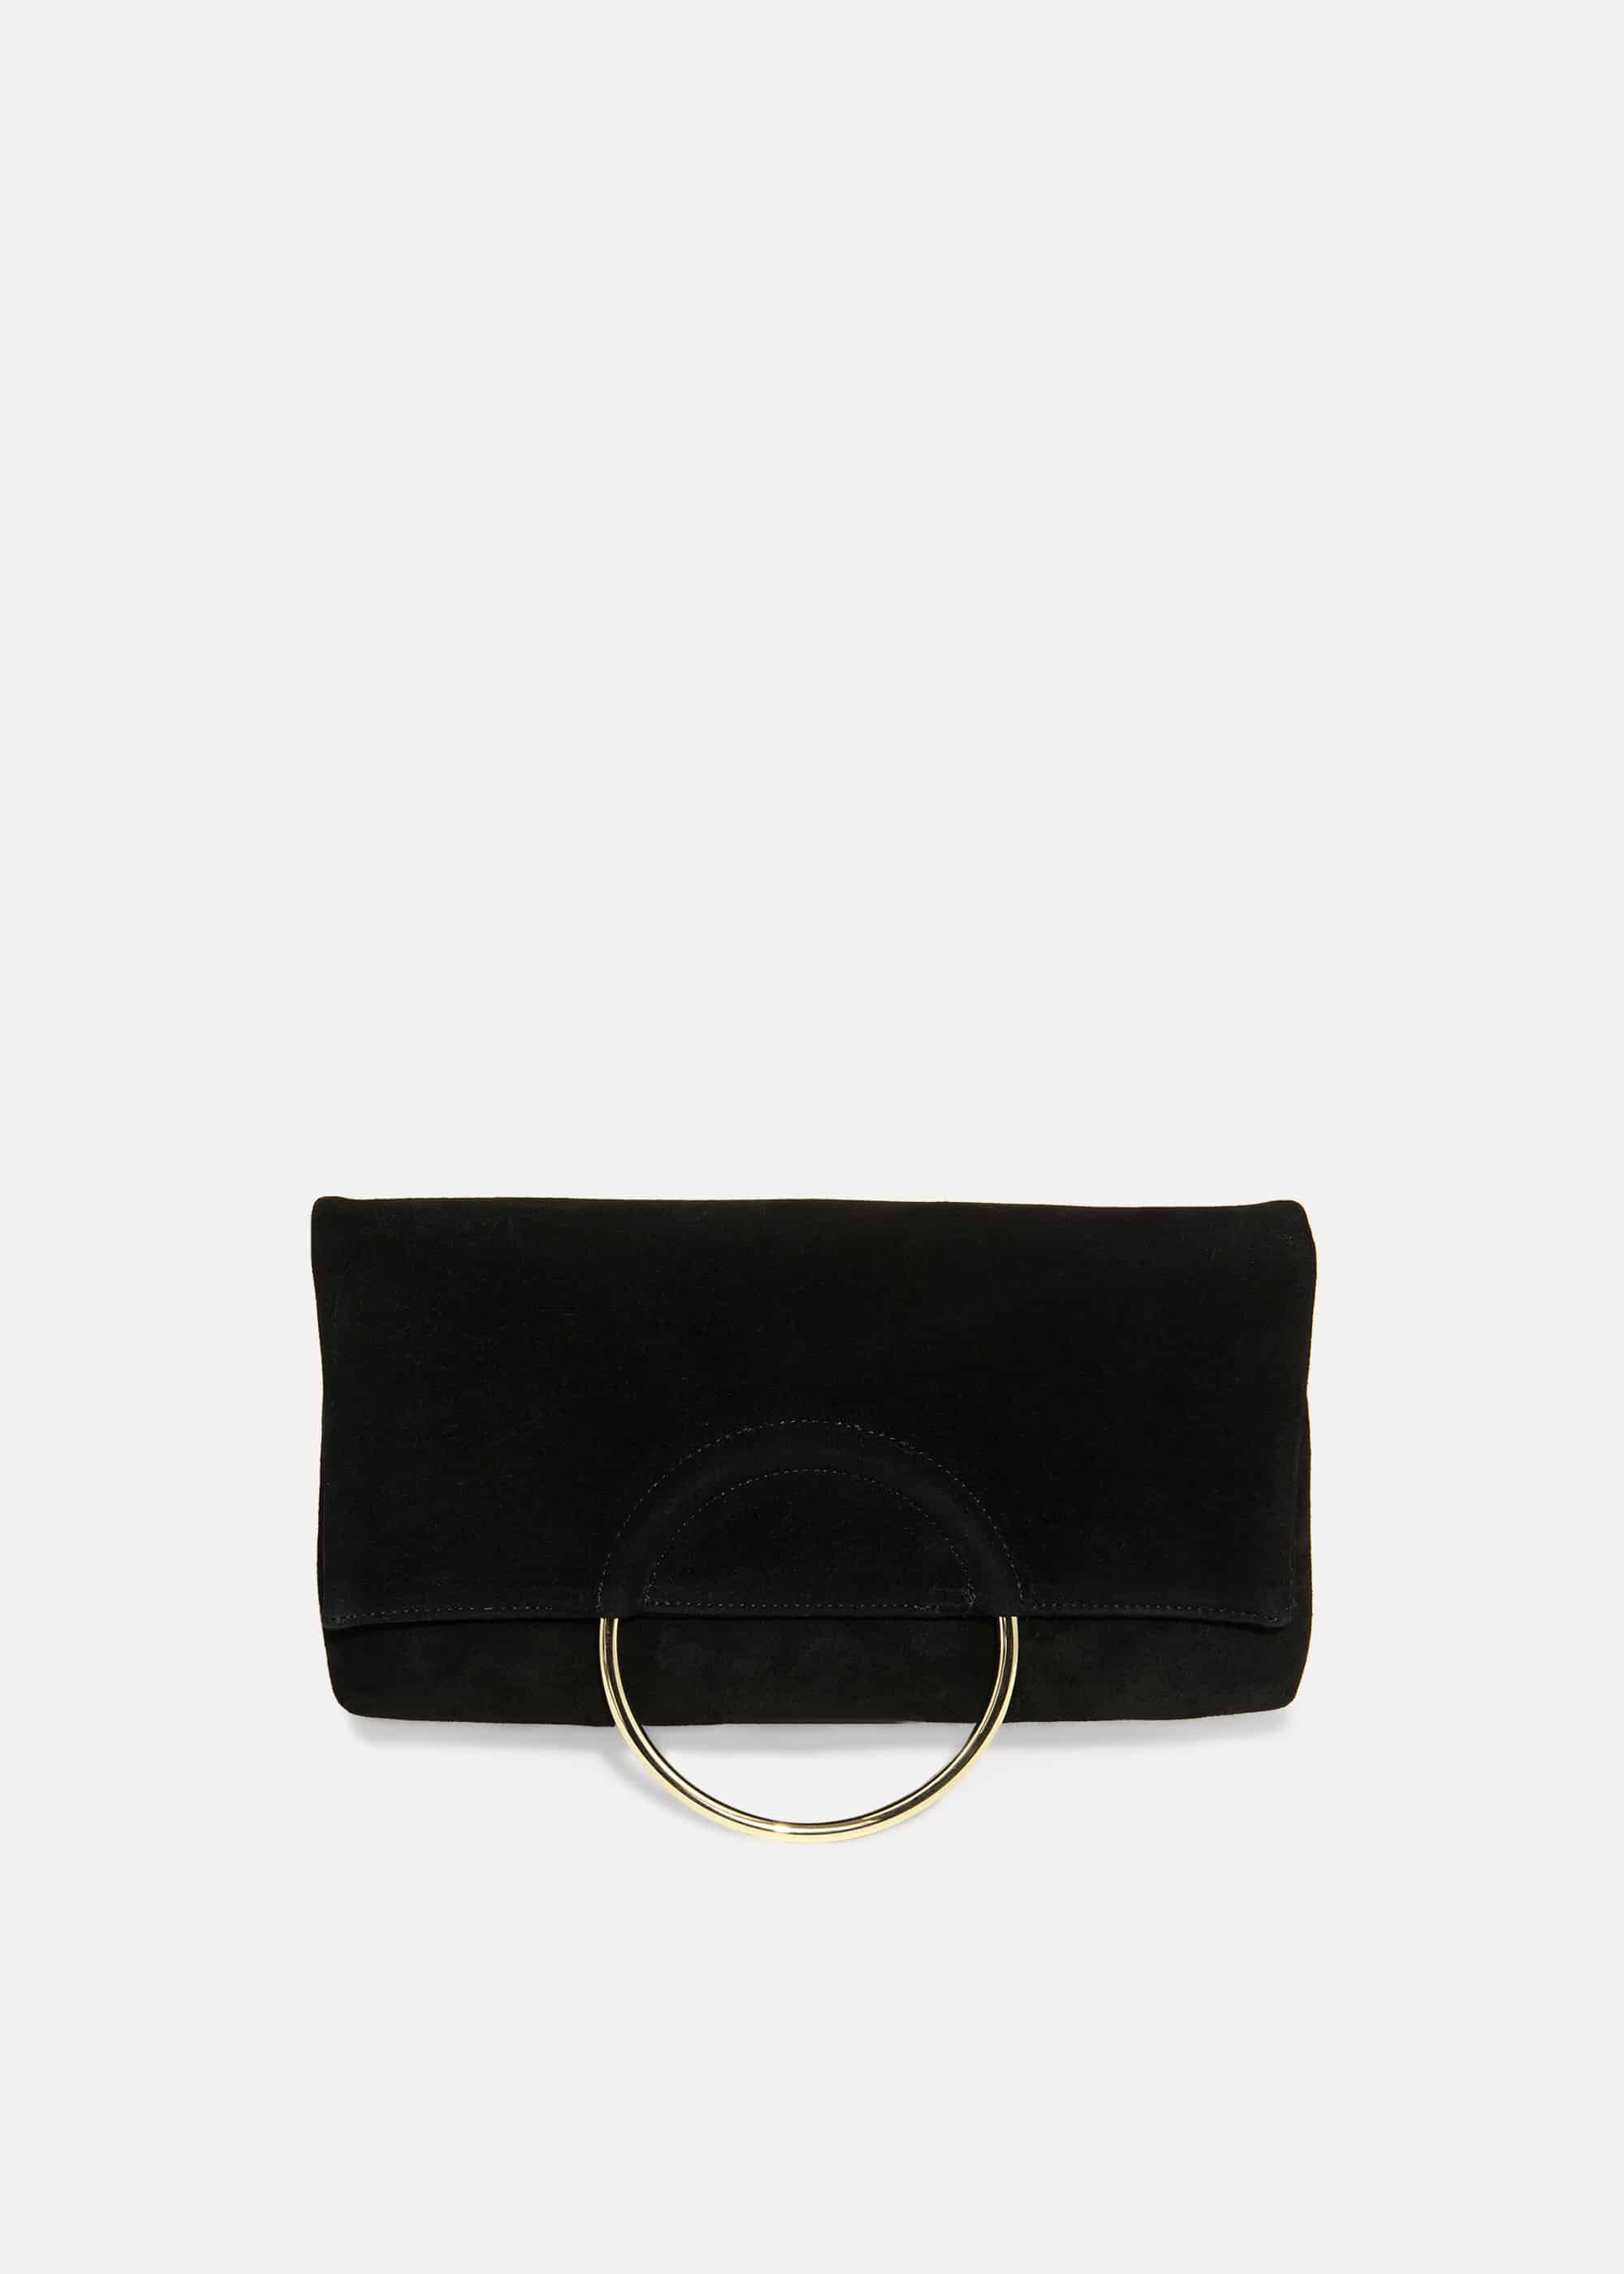 Phase Eight Emma Ring Handle Clutch, Black, Bag